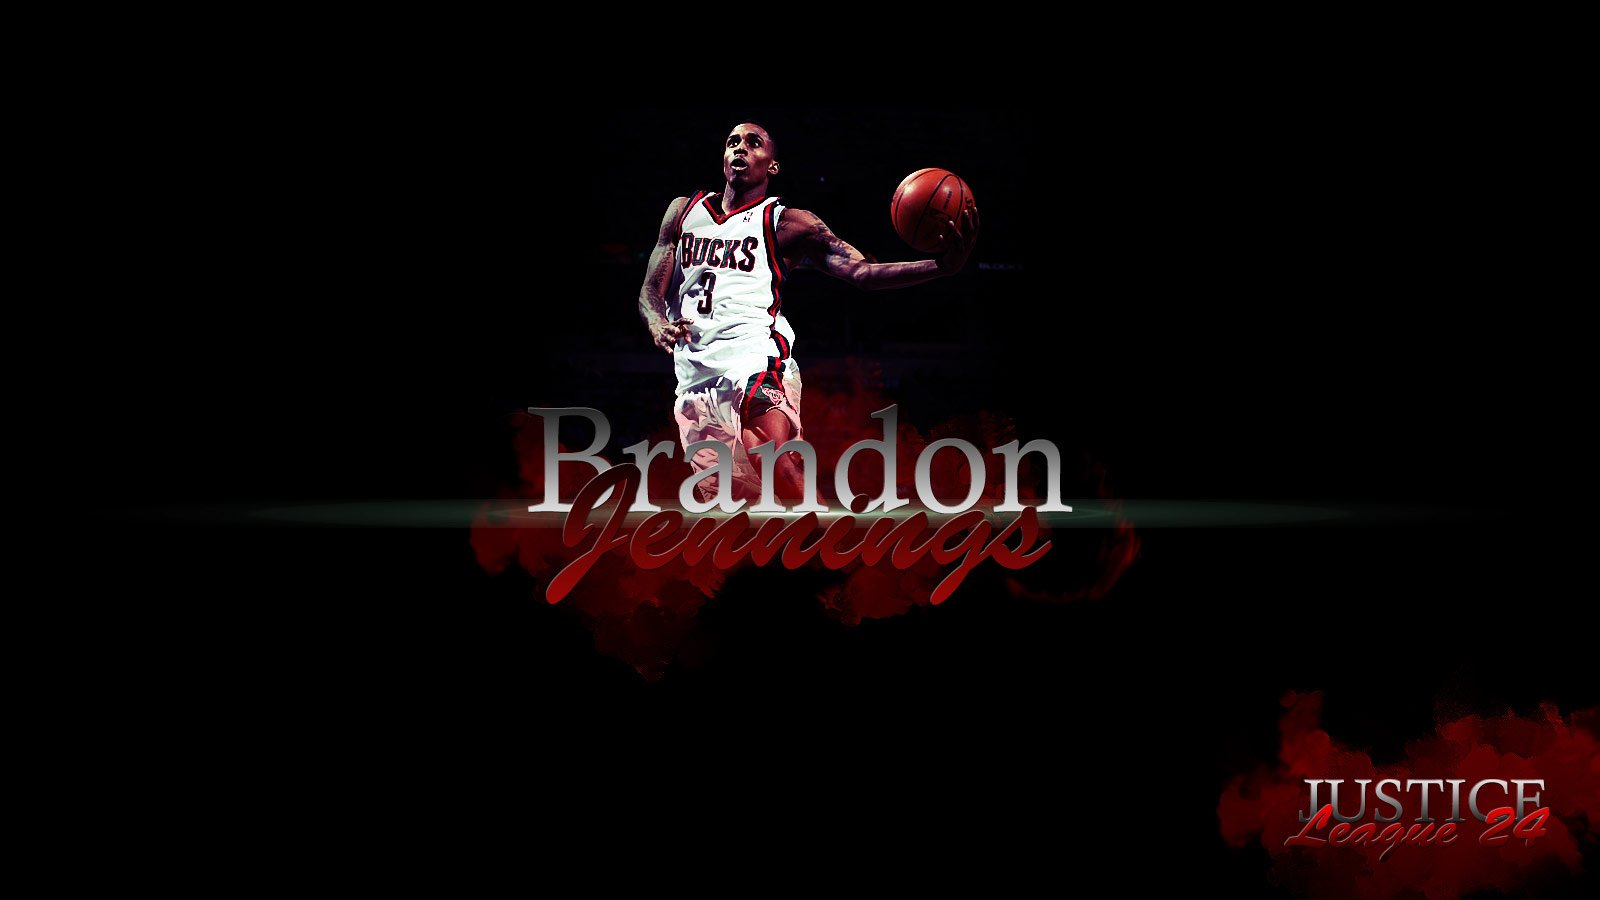 85] Brandon Jennings Wallpapers on WallpaperSafari 1600x900